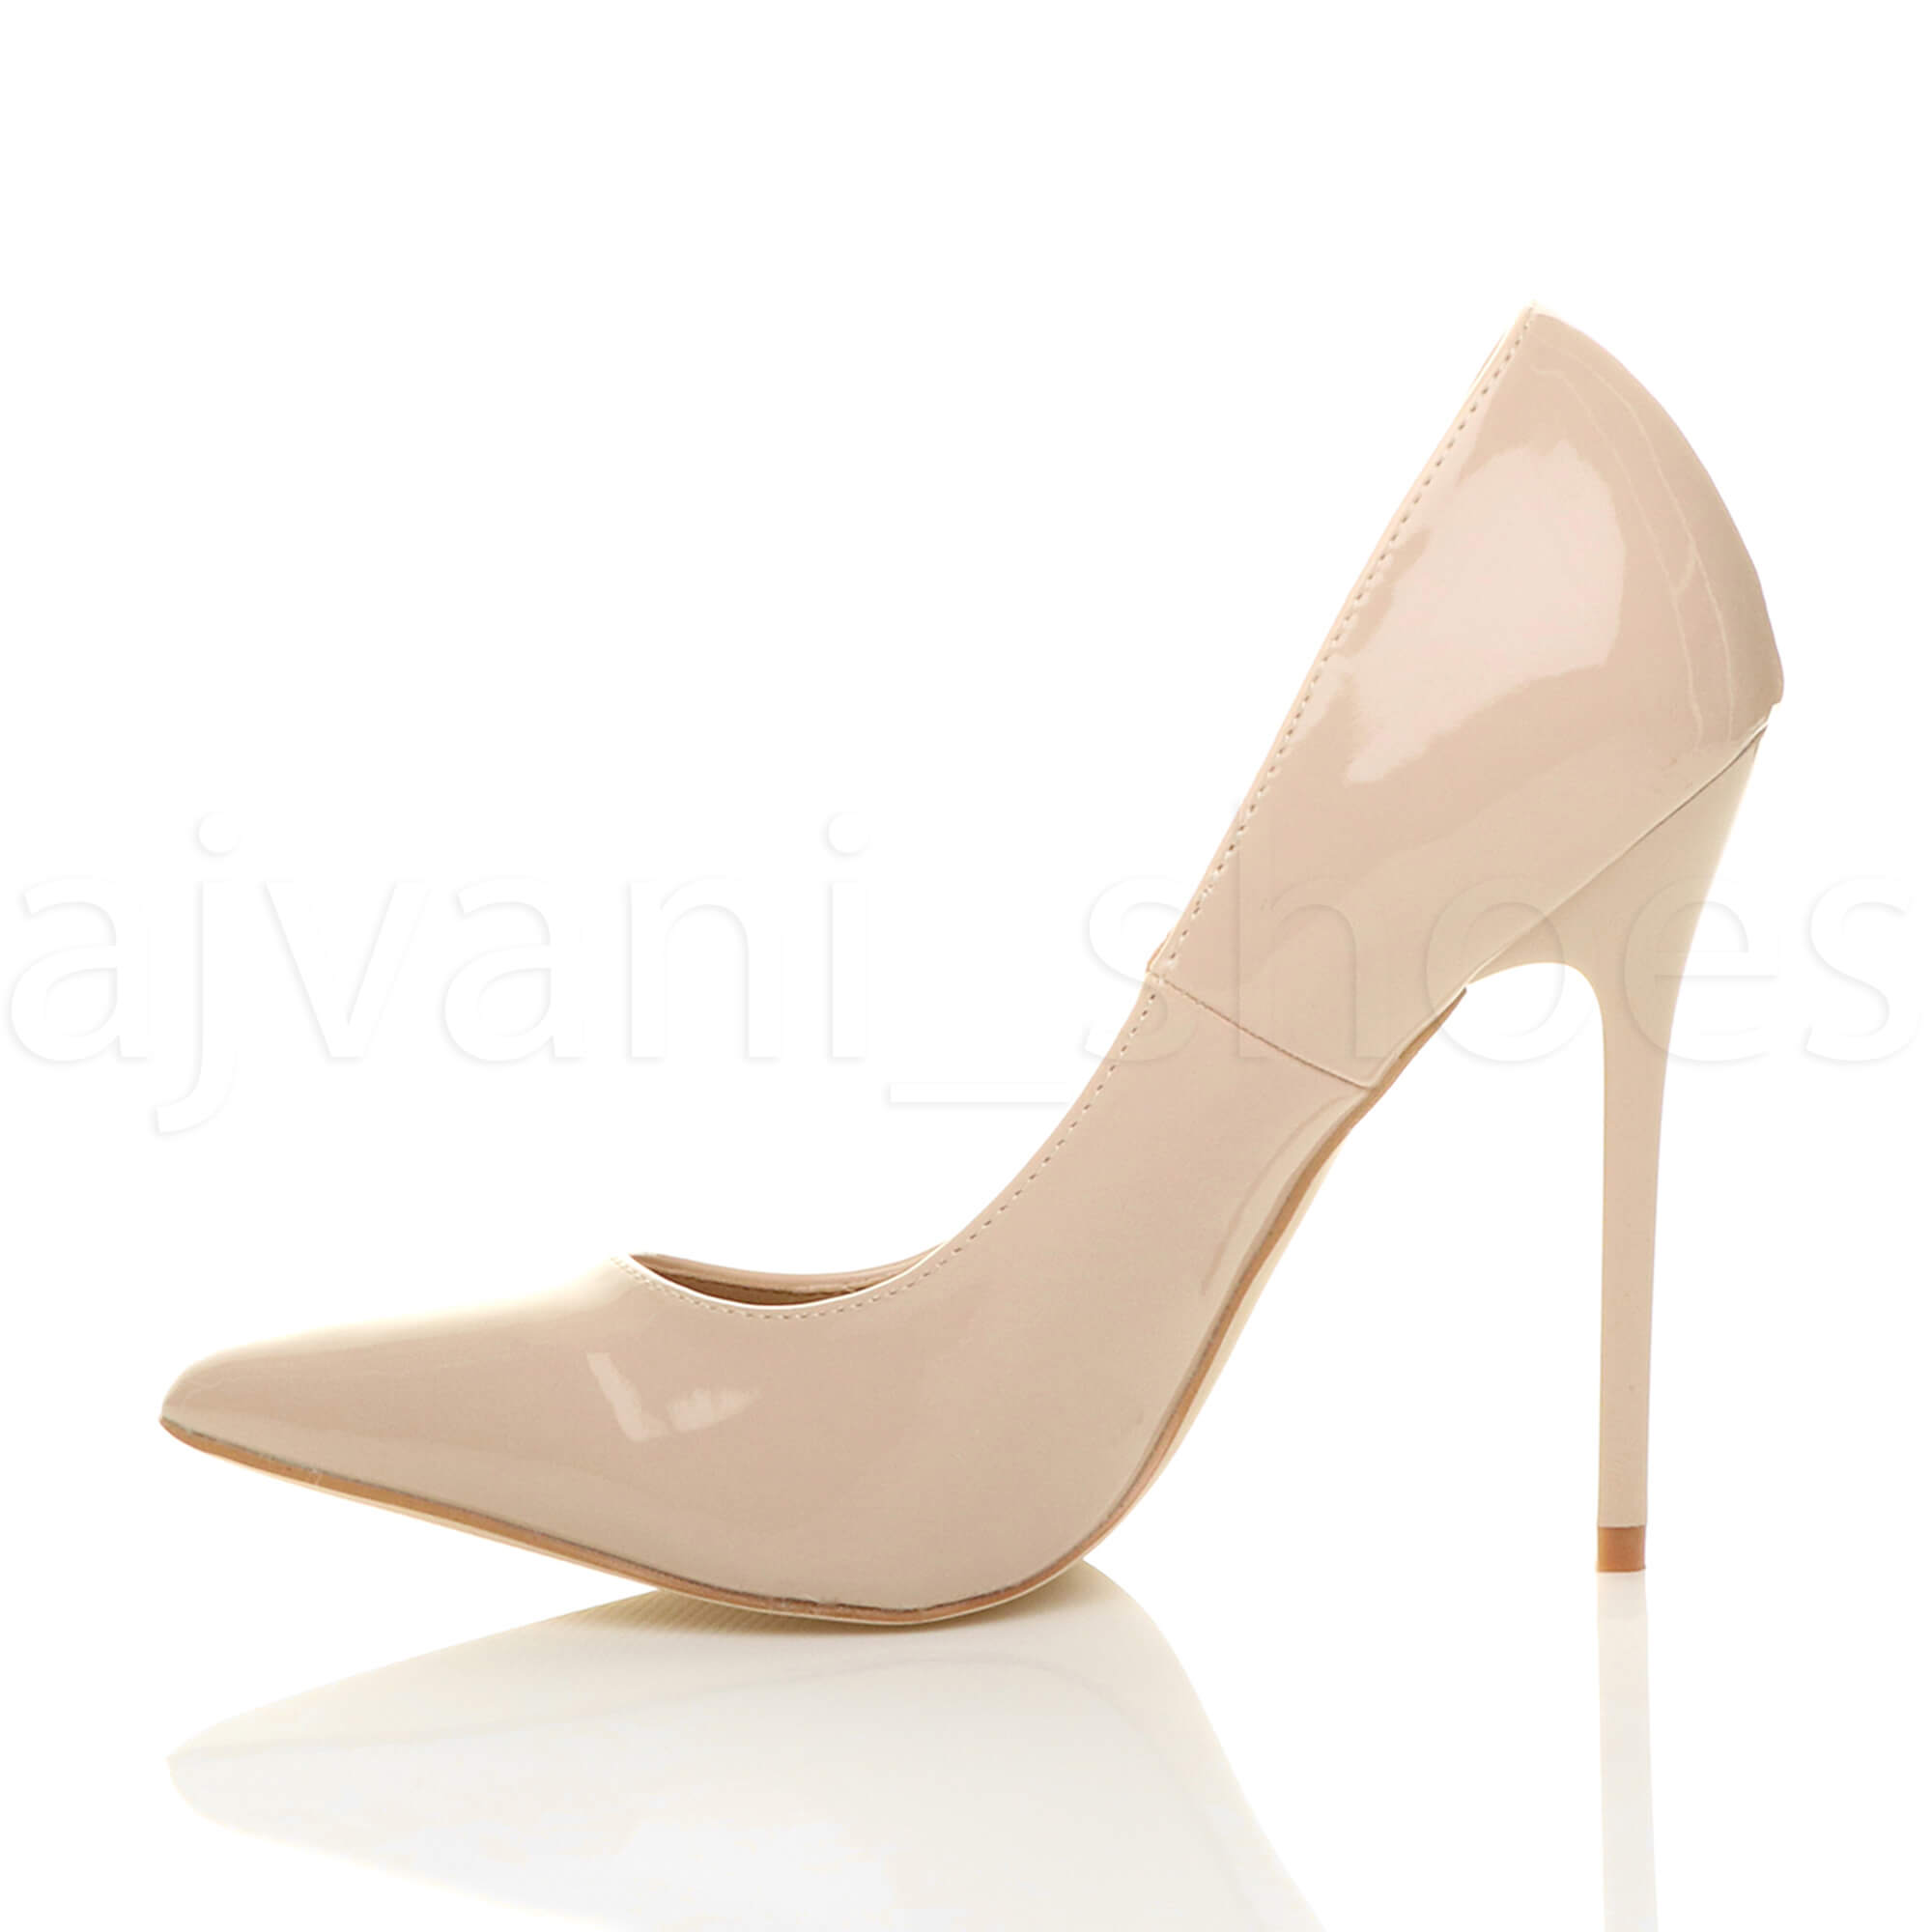 WOMENS-LADIES-HIGH-HEEL-POINTED-CONTRAST-COURT-SMART-PARTY-WORK-SHOES-PUMPS-SIZE thumbnail 146